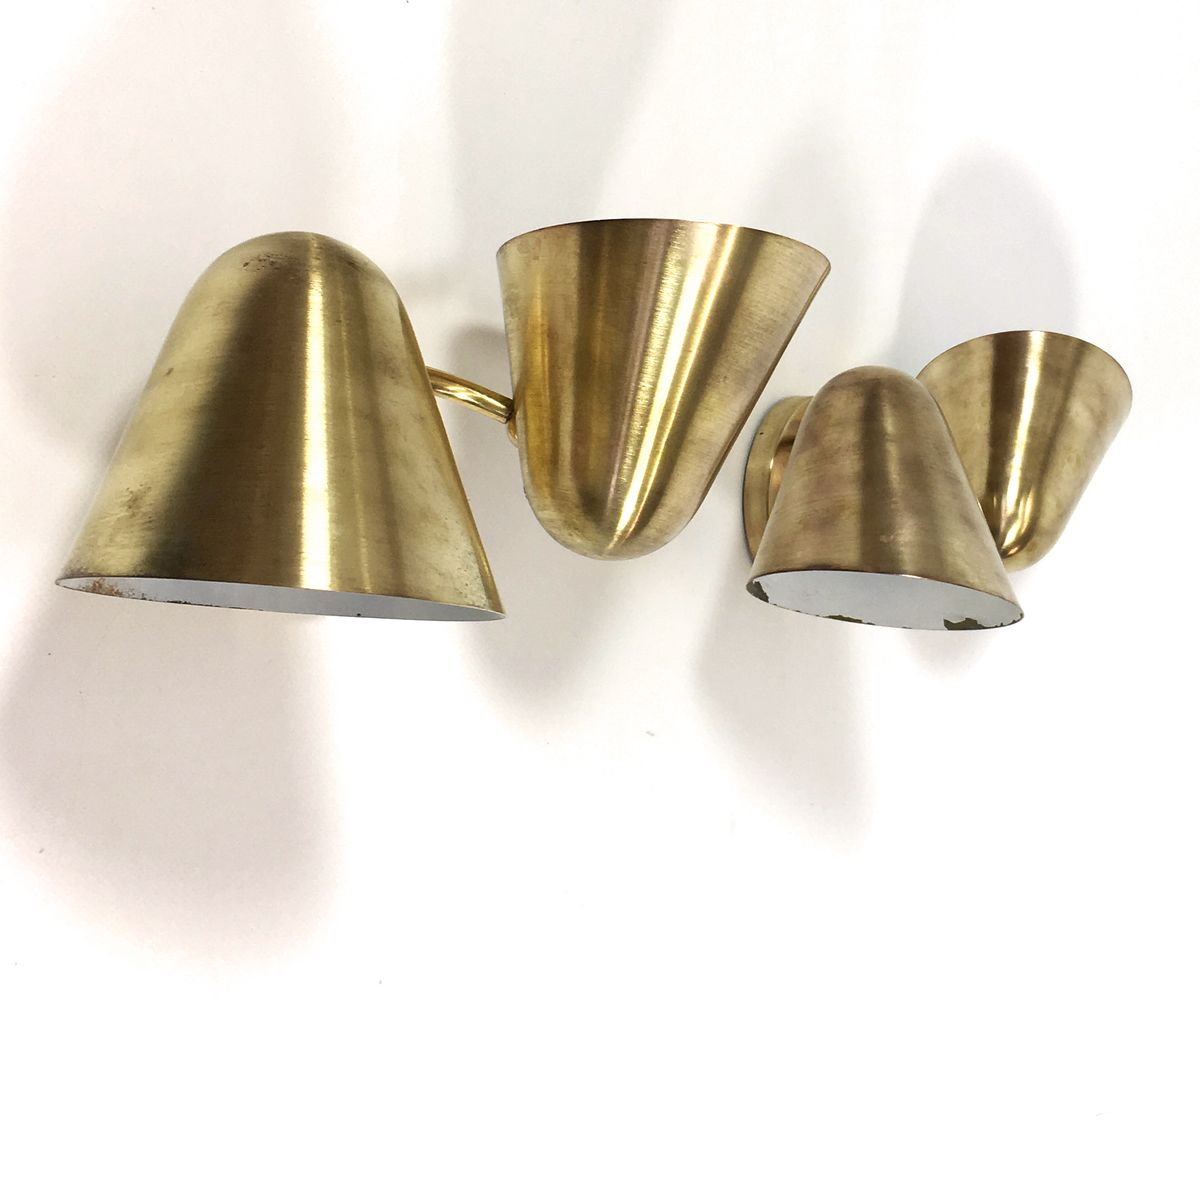 Wall Mounted Brass Lamps : French Brass Wall Mounted Lamps, 1950s, Set of 2 for sale at Pamono